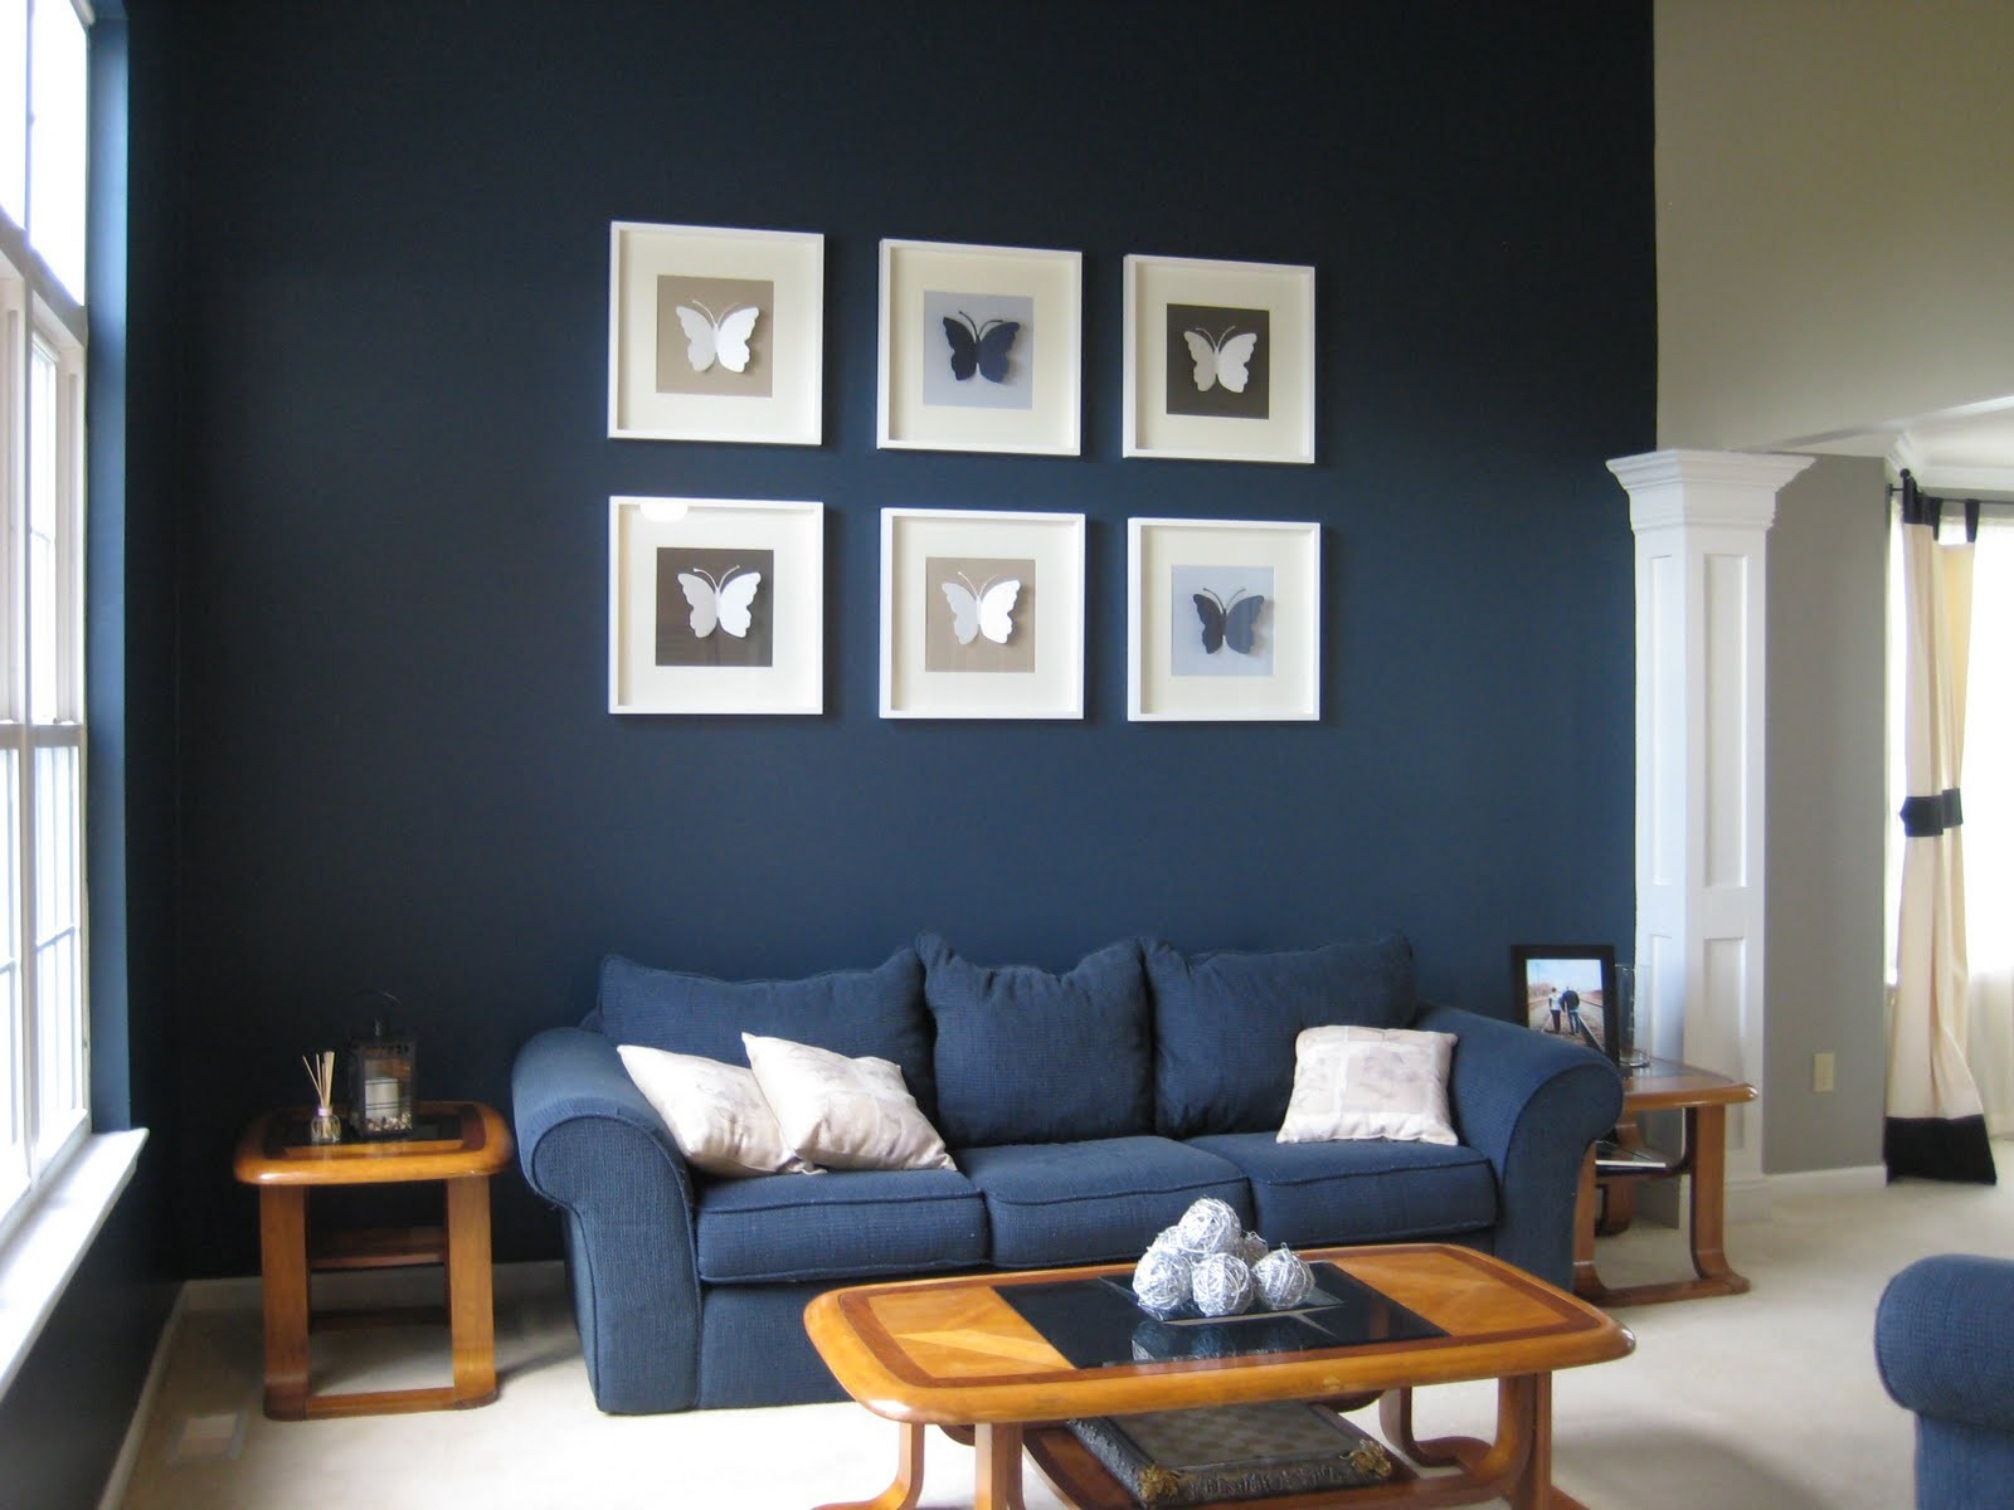 16 Dazzling Blue Living Room Ideas Cozy Design And Photos: Inspiration Blue  Living Room Ideas With White Pictures Frame Over Blue Fabric Sofa And  Wooden ...